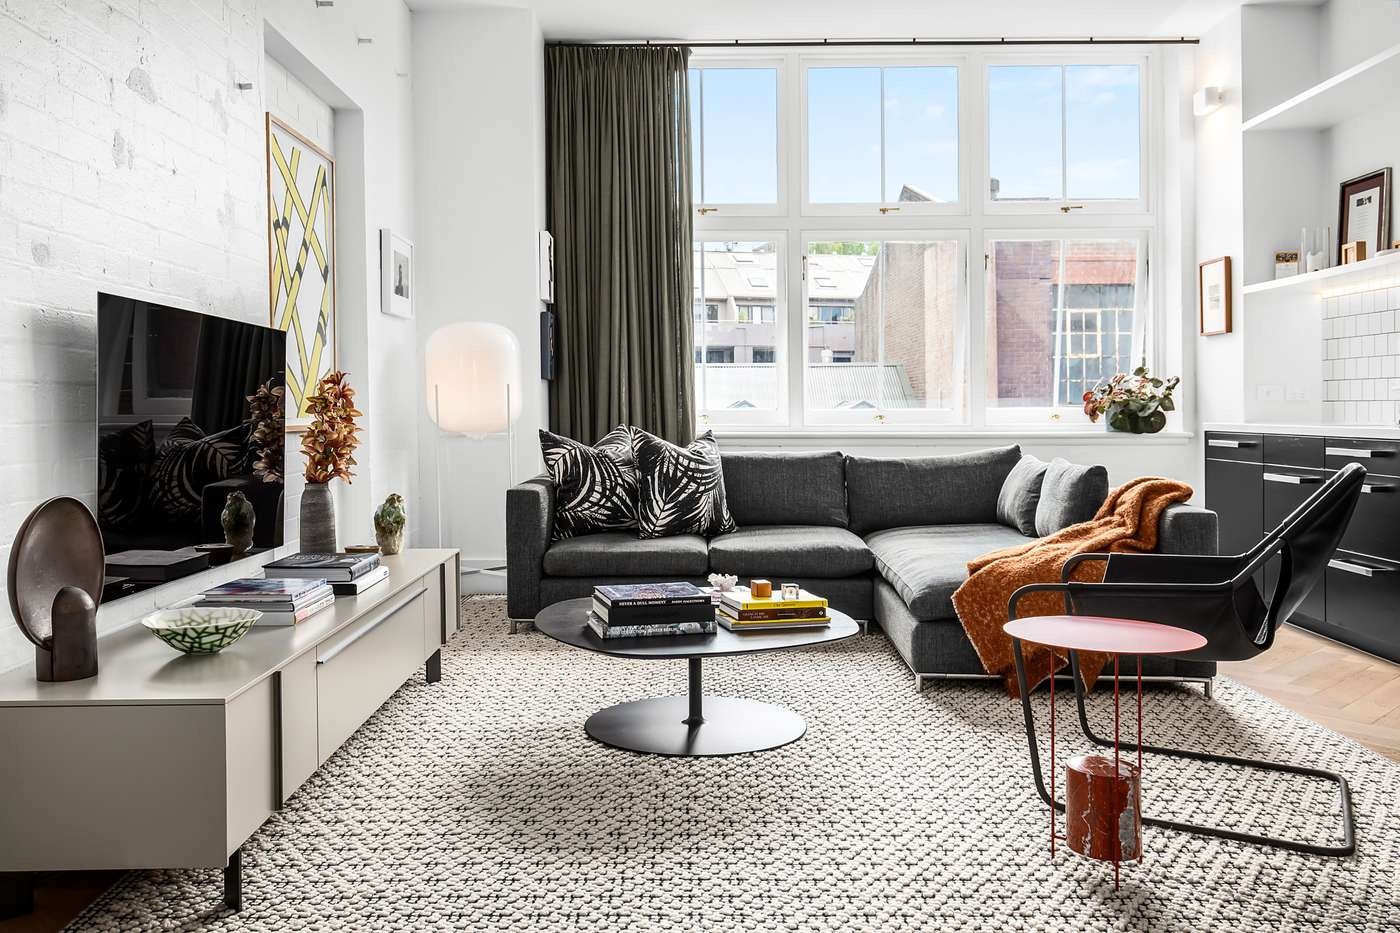 Main view of Homely apartment listing, 204/117 Kippax Street, Surry Hills, NSW 2010